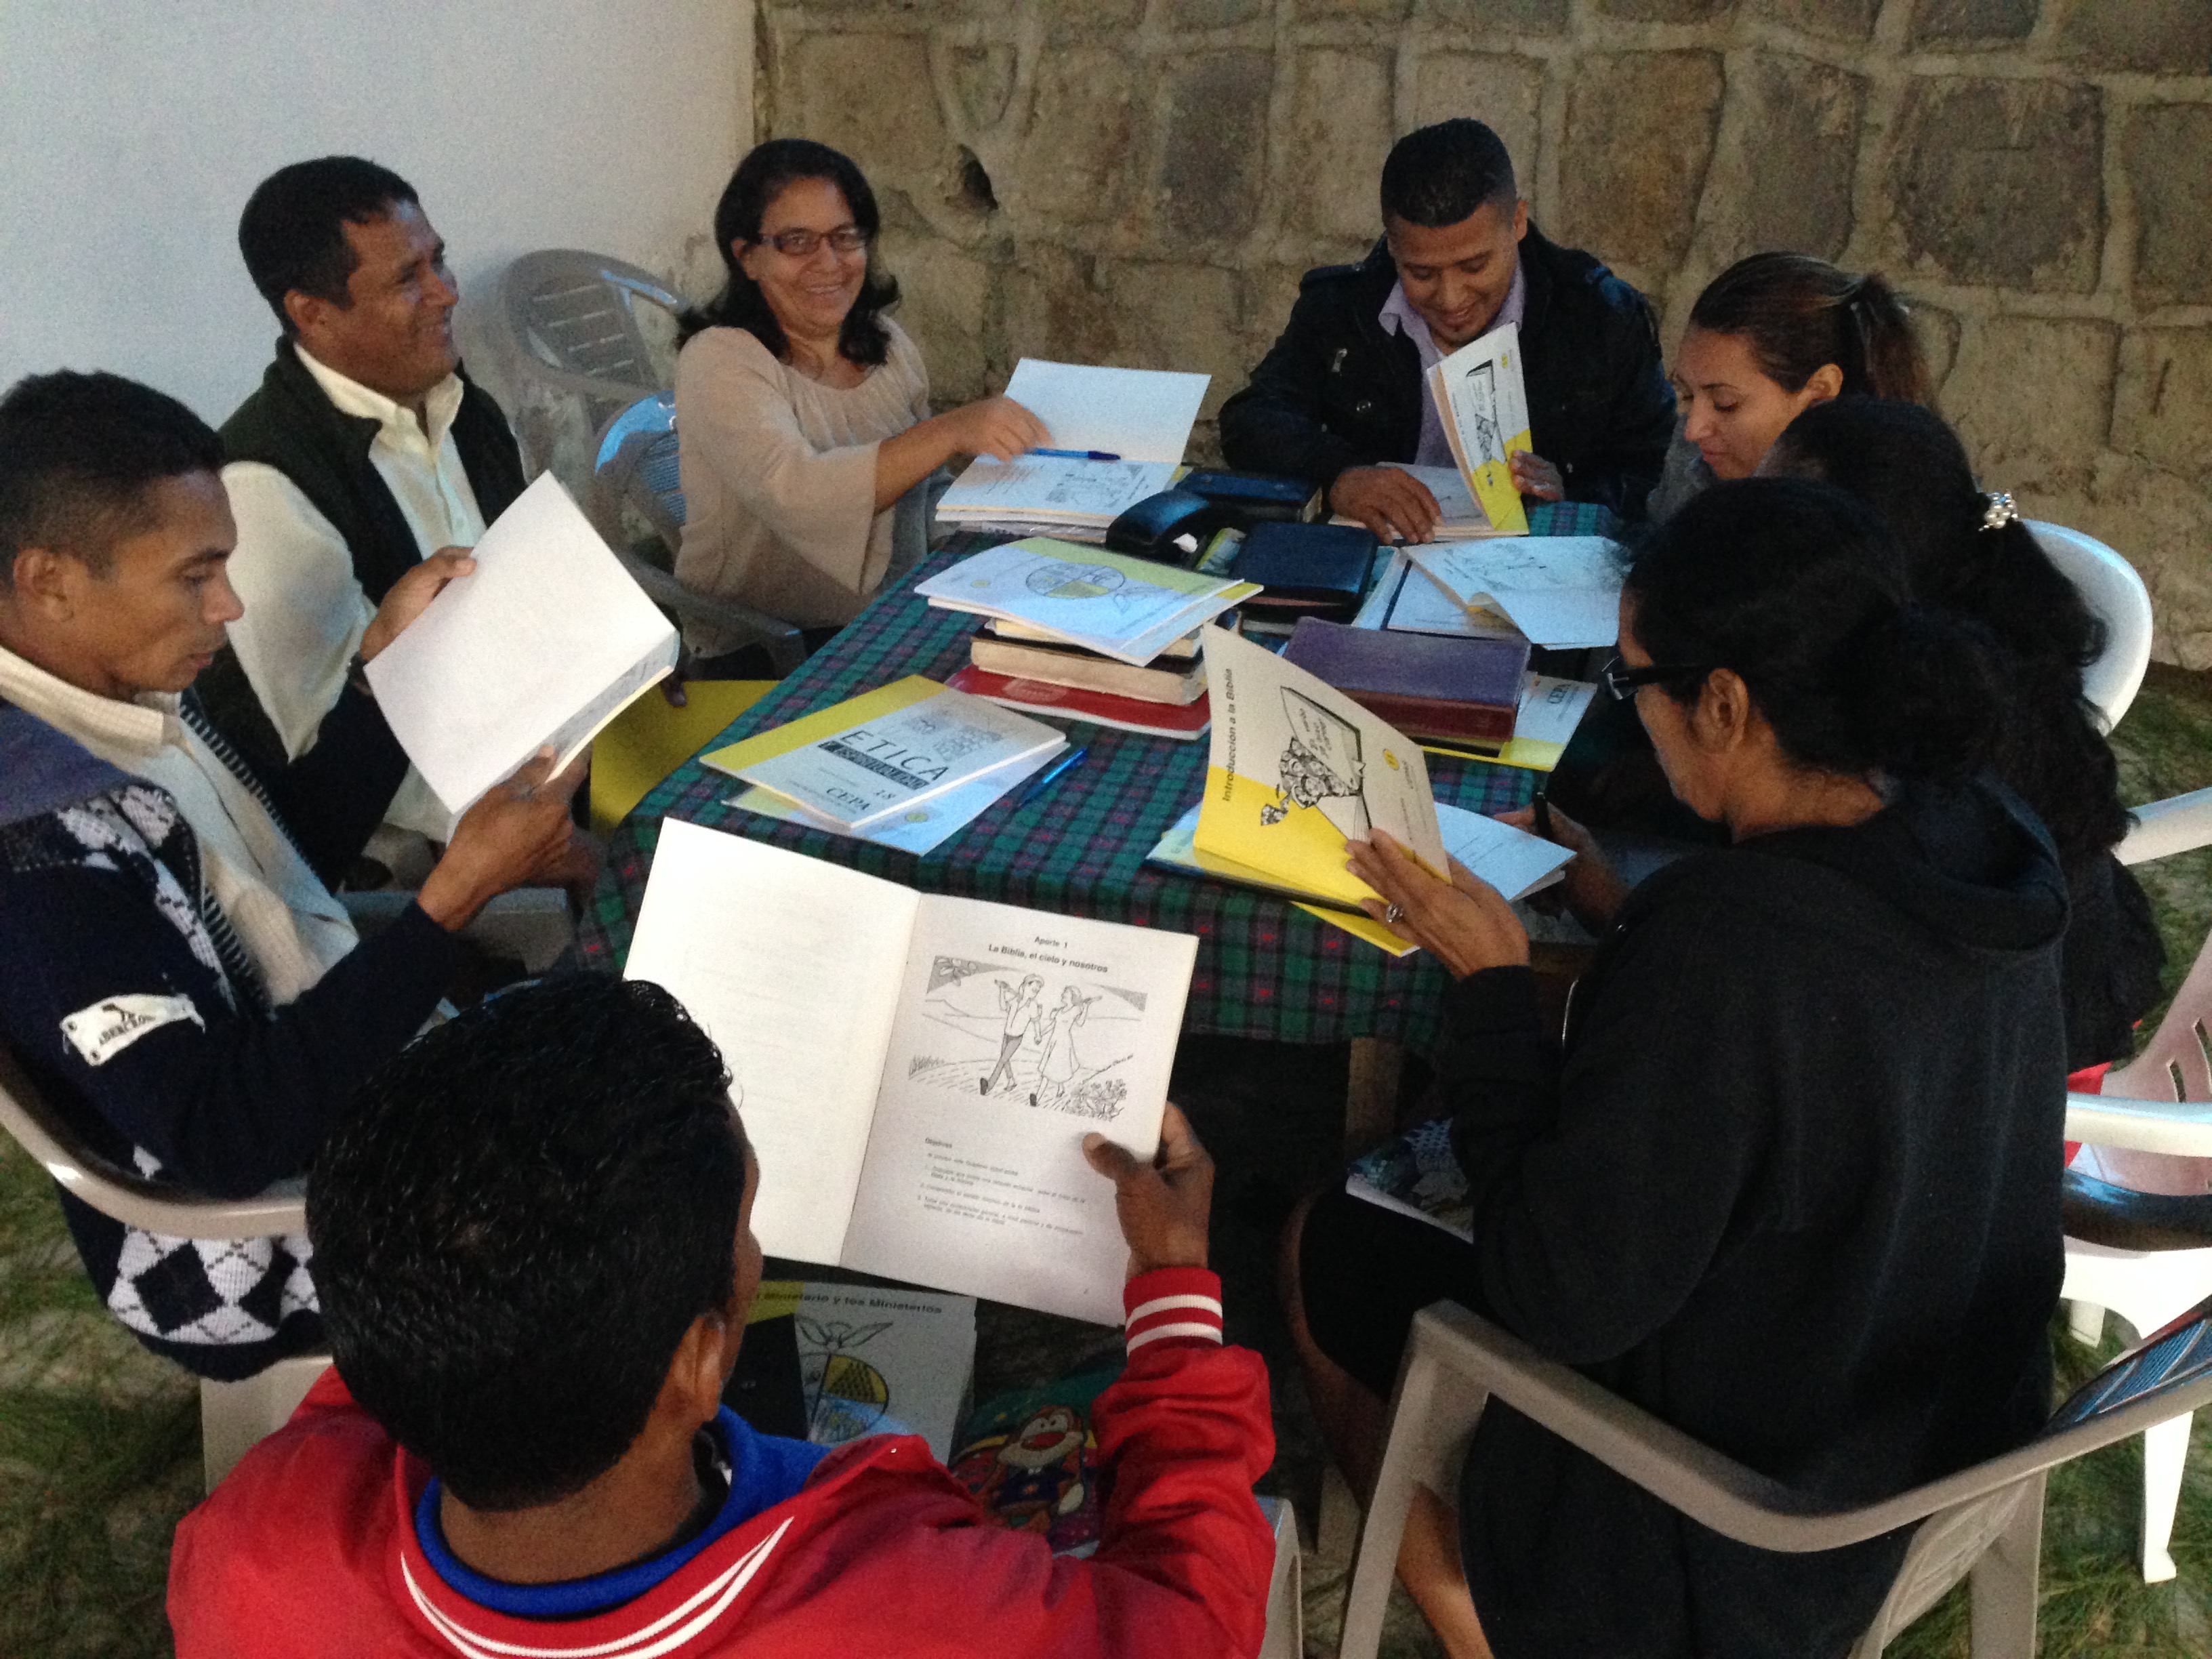 Small group discussion at the inaugural class of the theological education program with the Presbyterian Church of Honduras.